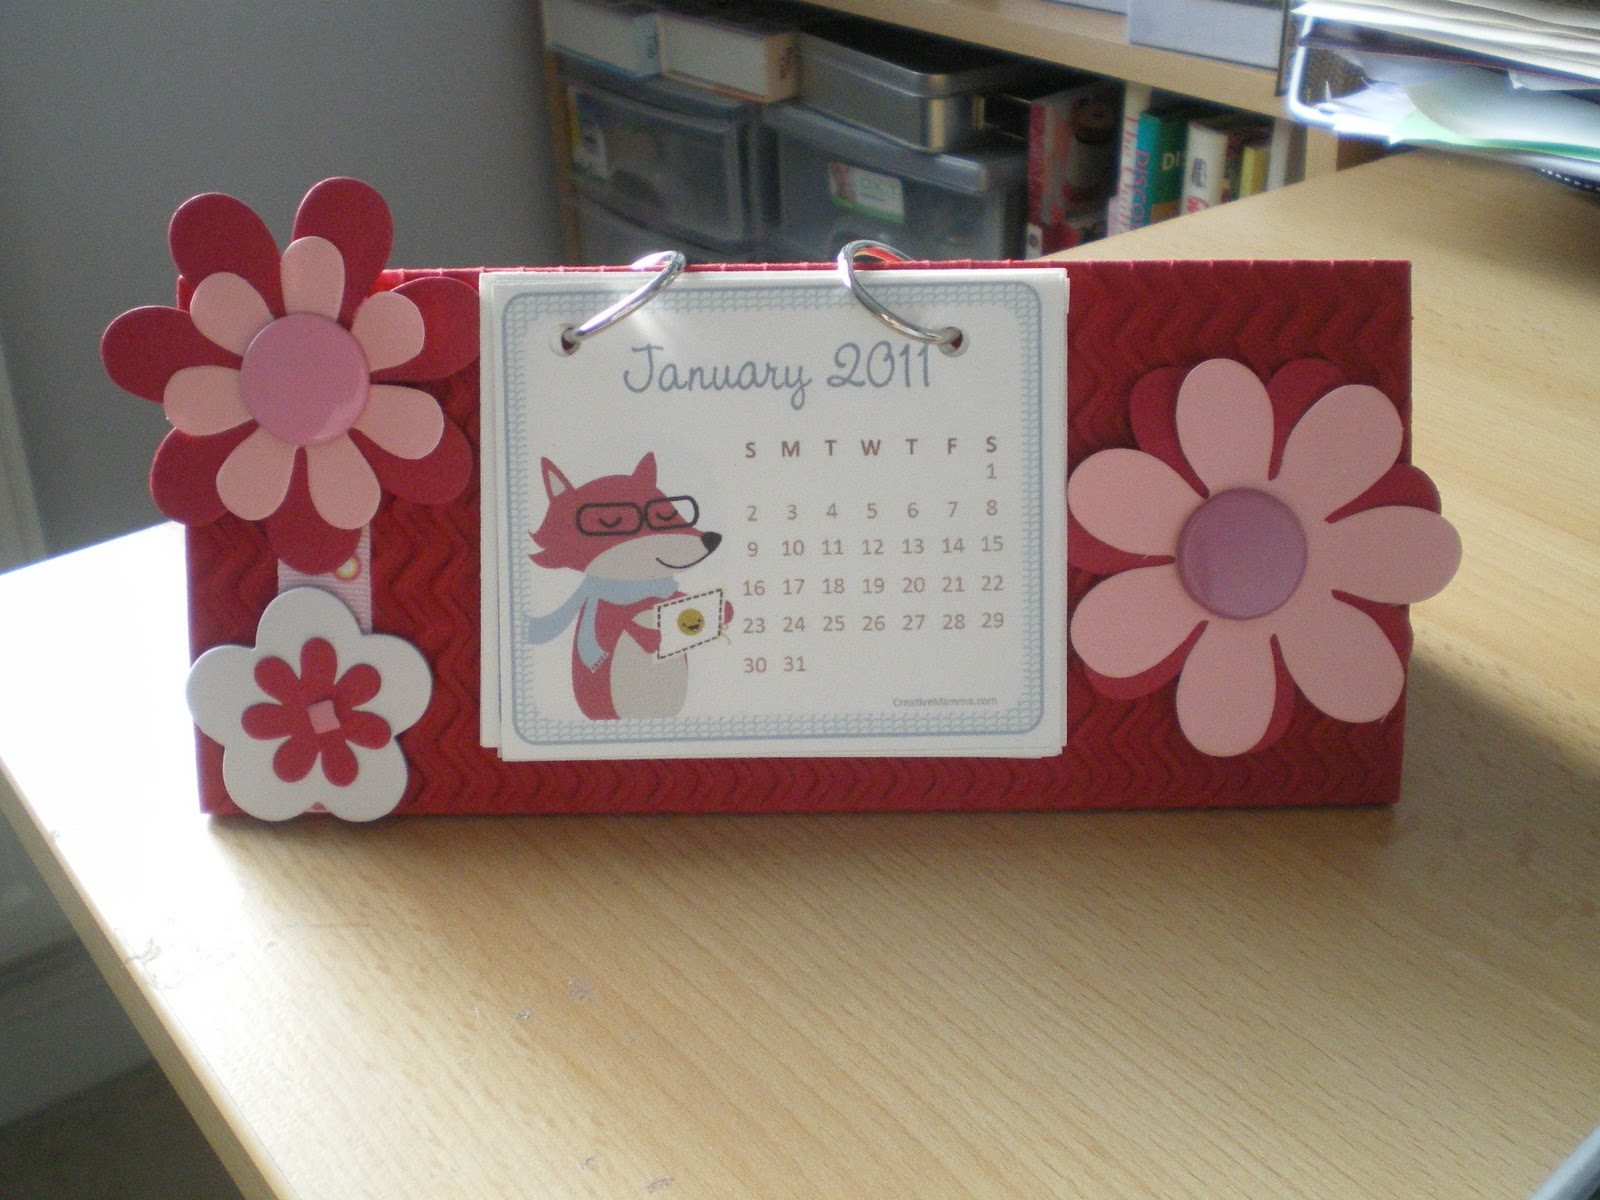 Ks Calendar Ideas To Make : Scratchy cat crafter easy homemade desk calendar